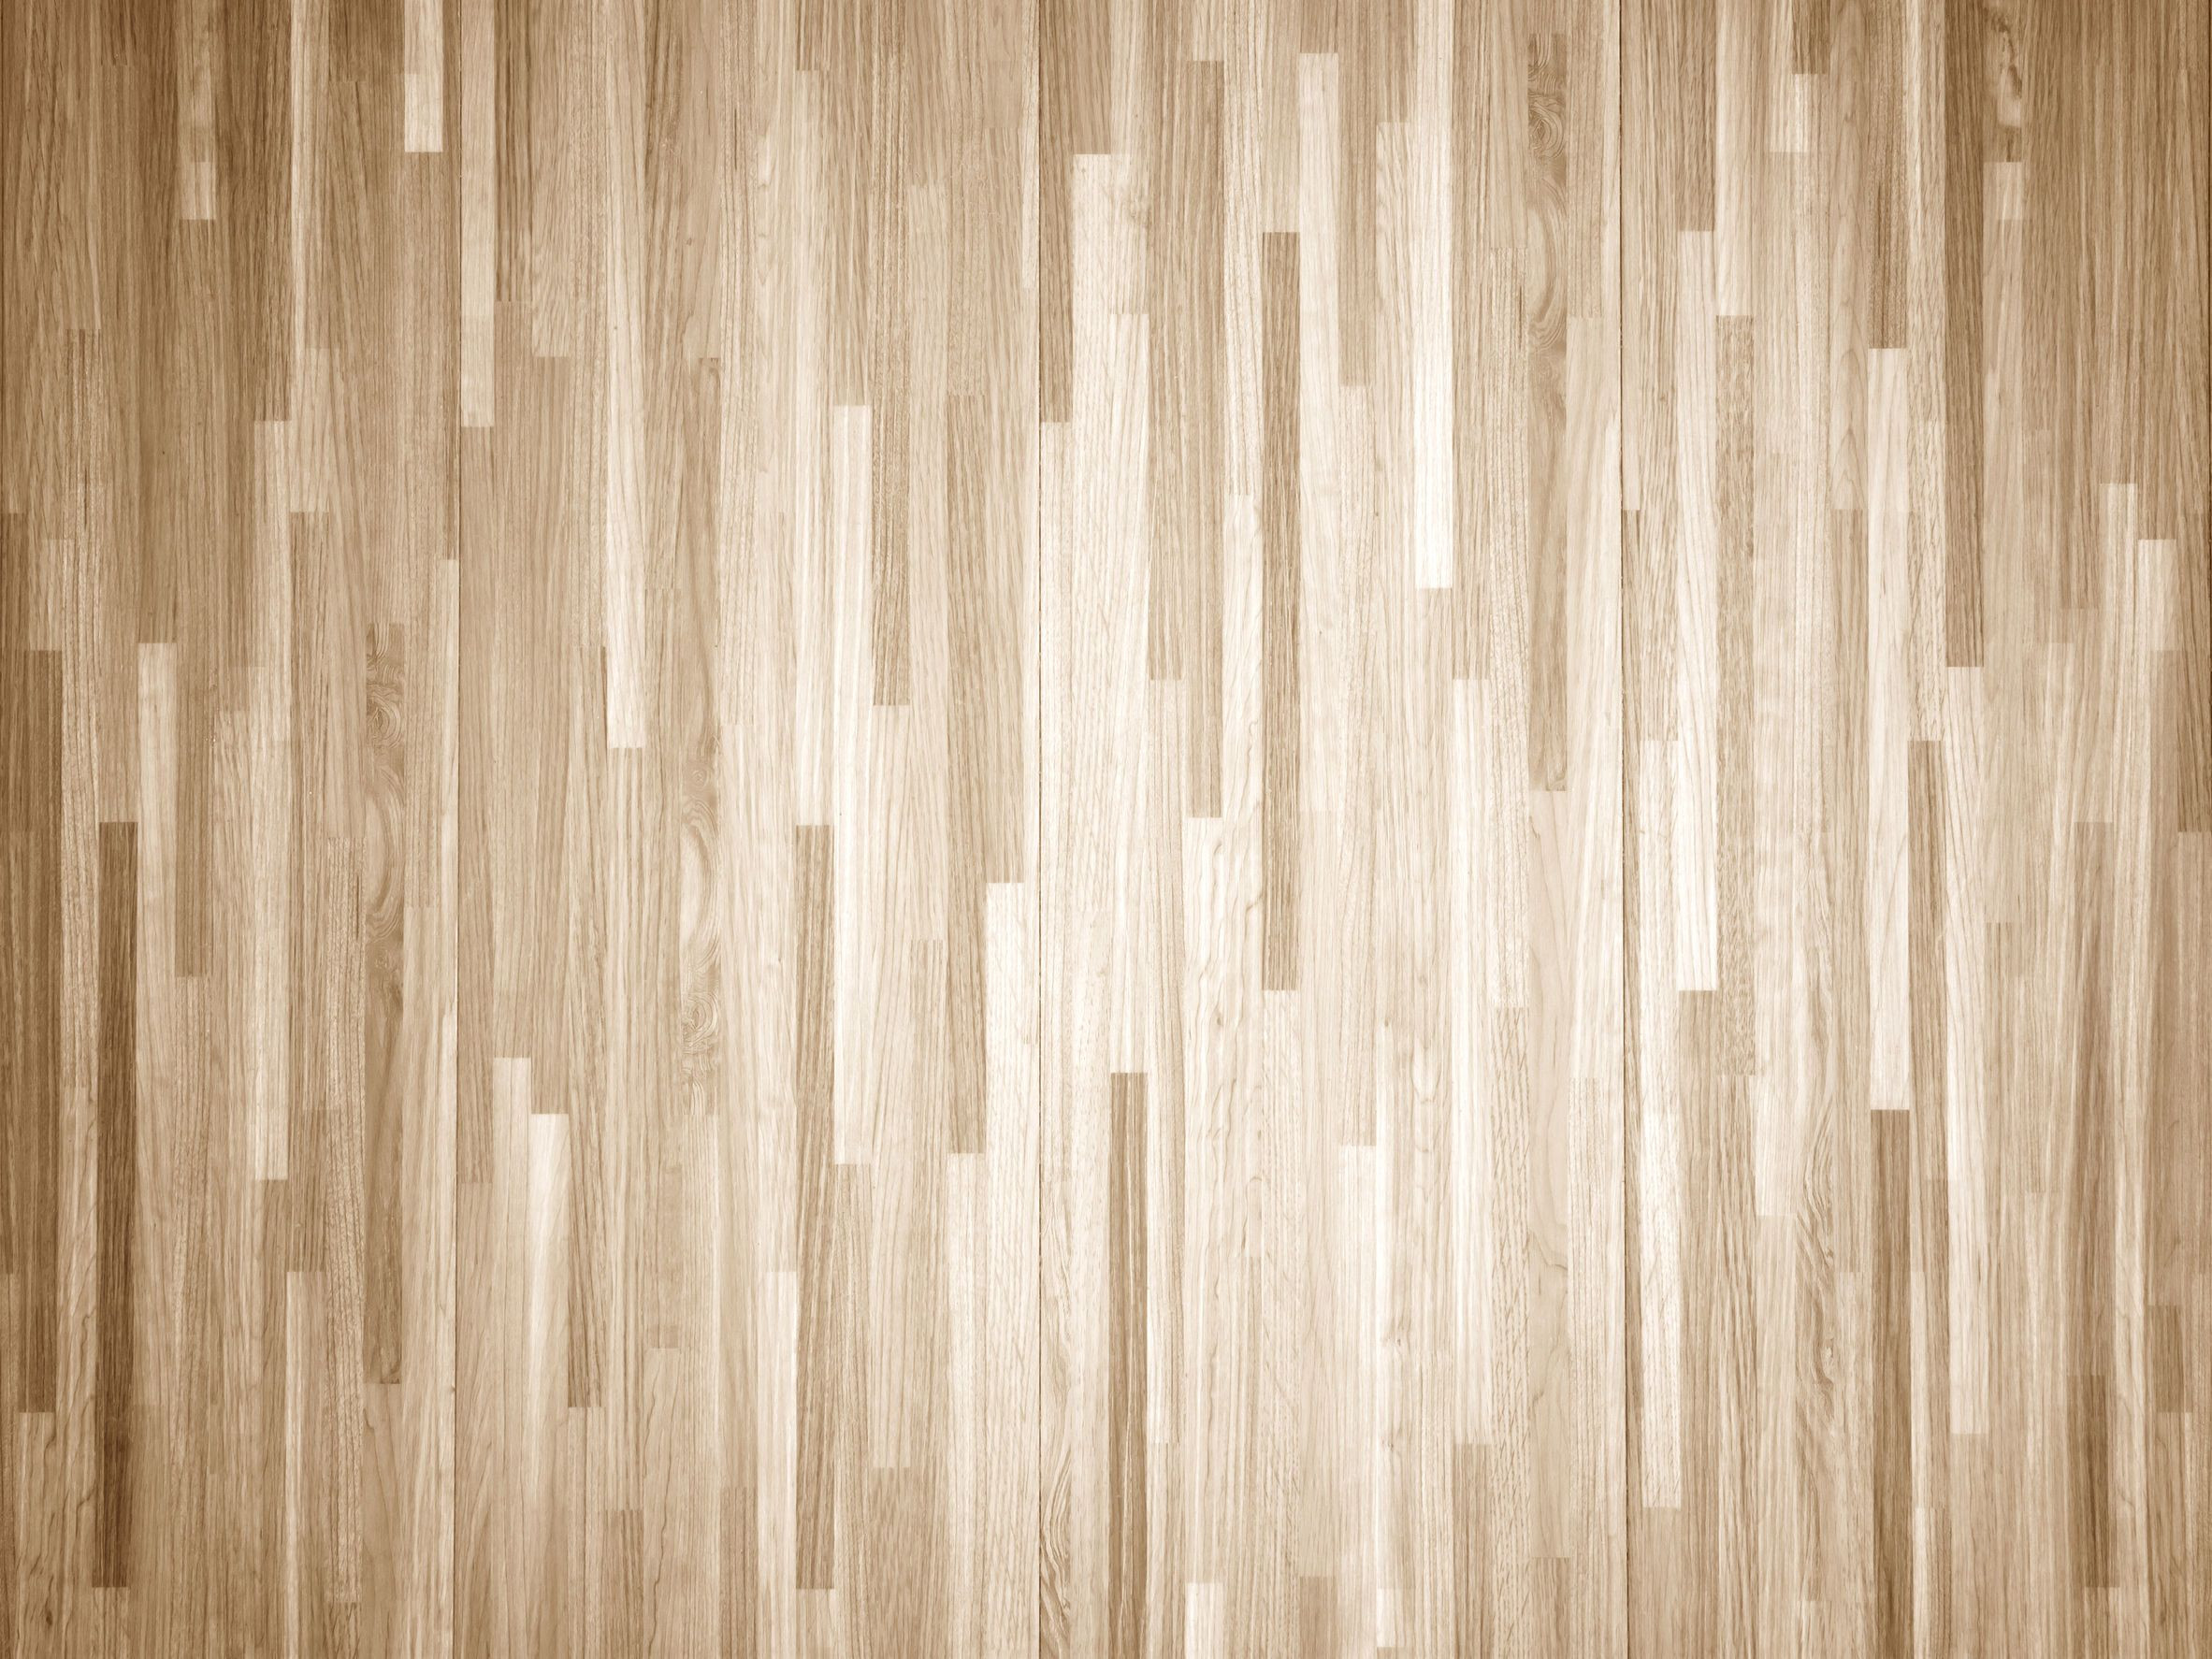 how much does staining hardwood floors cost of how to chemically strip wood floors woodfloordoctor com regarding you